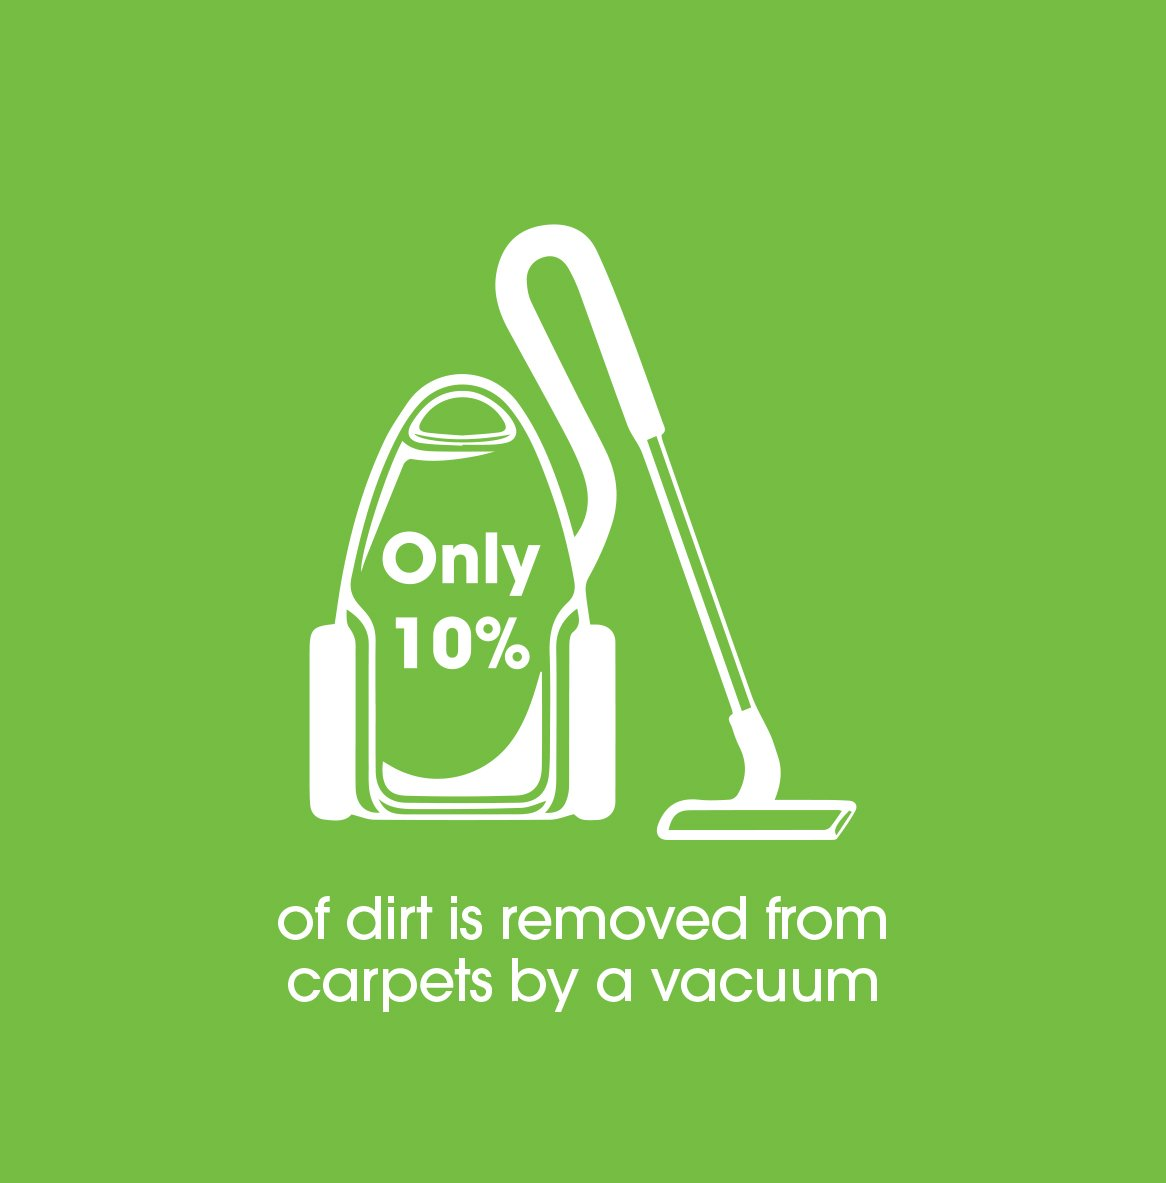 10% of dirt is removed from carpets by a vacuum